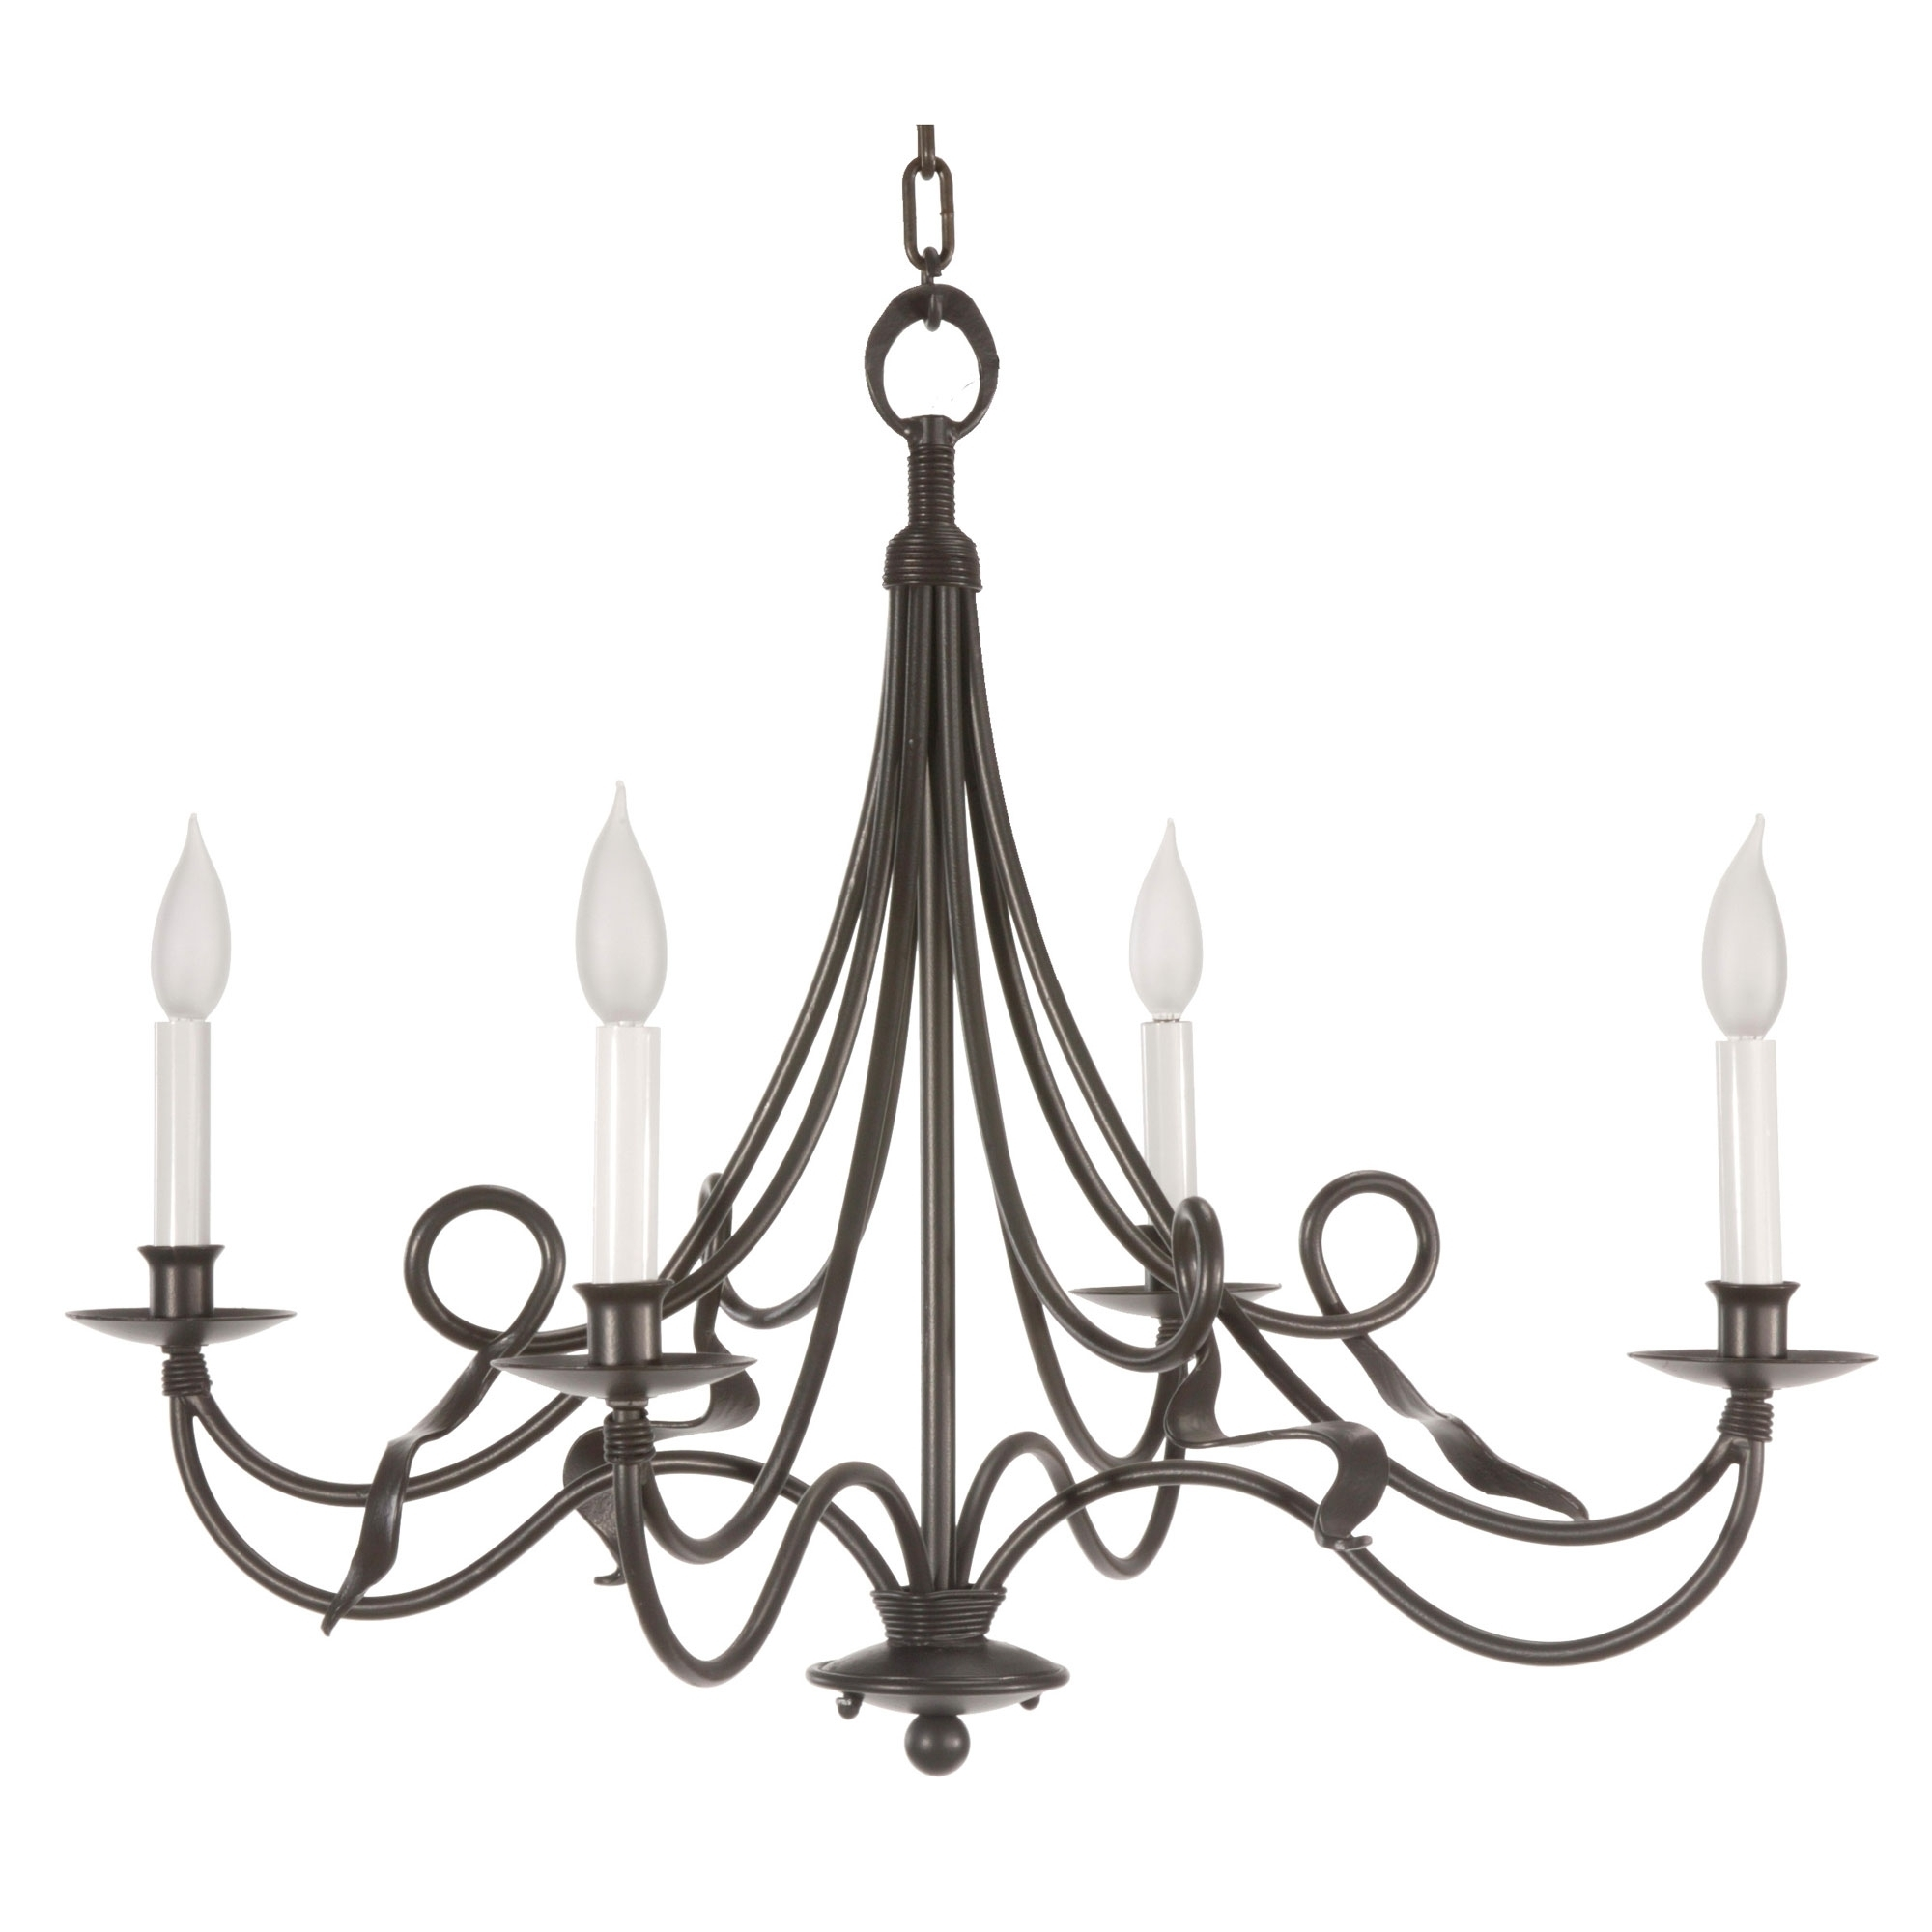 Black Color Rustic Cast Iron Chandeliers With Candle Holder For Intended For Best And Newest Black Iron Chandeliers (View 5 of 15)